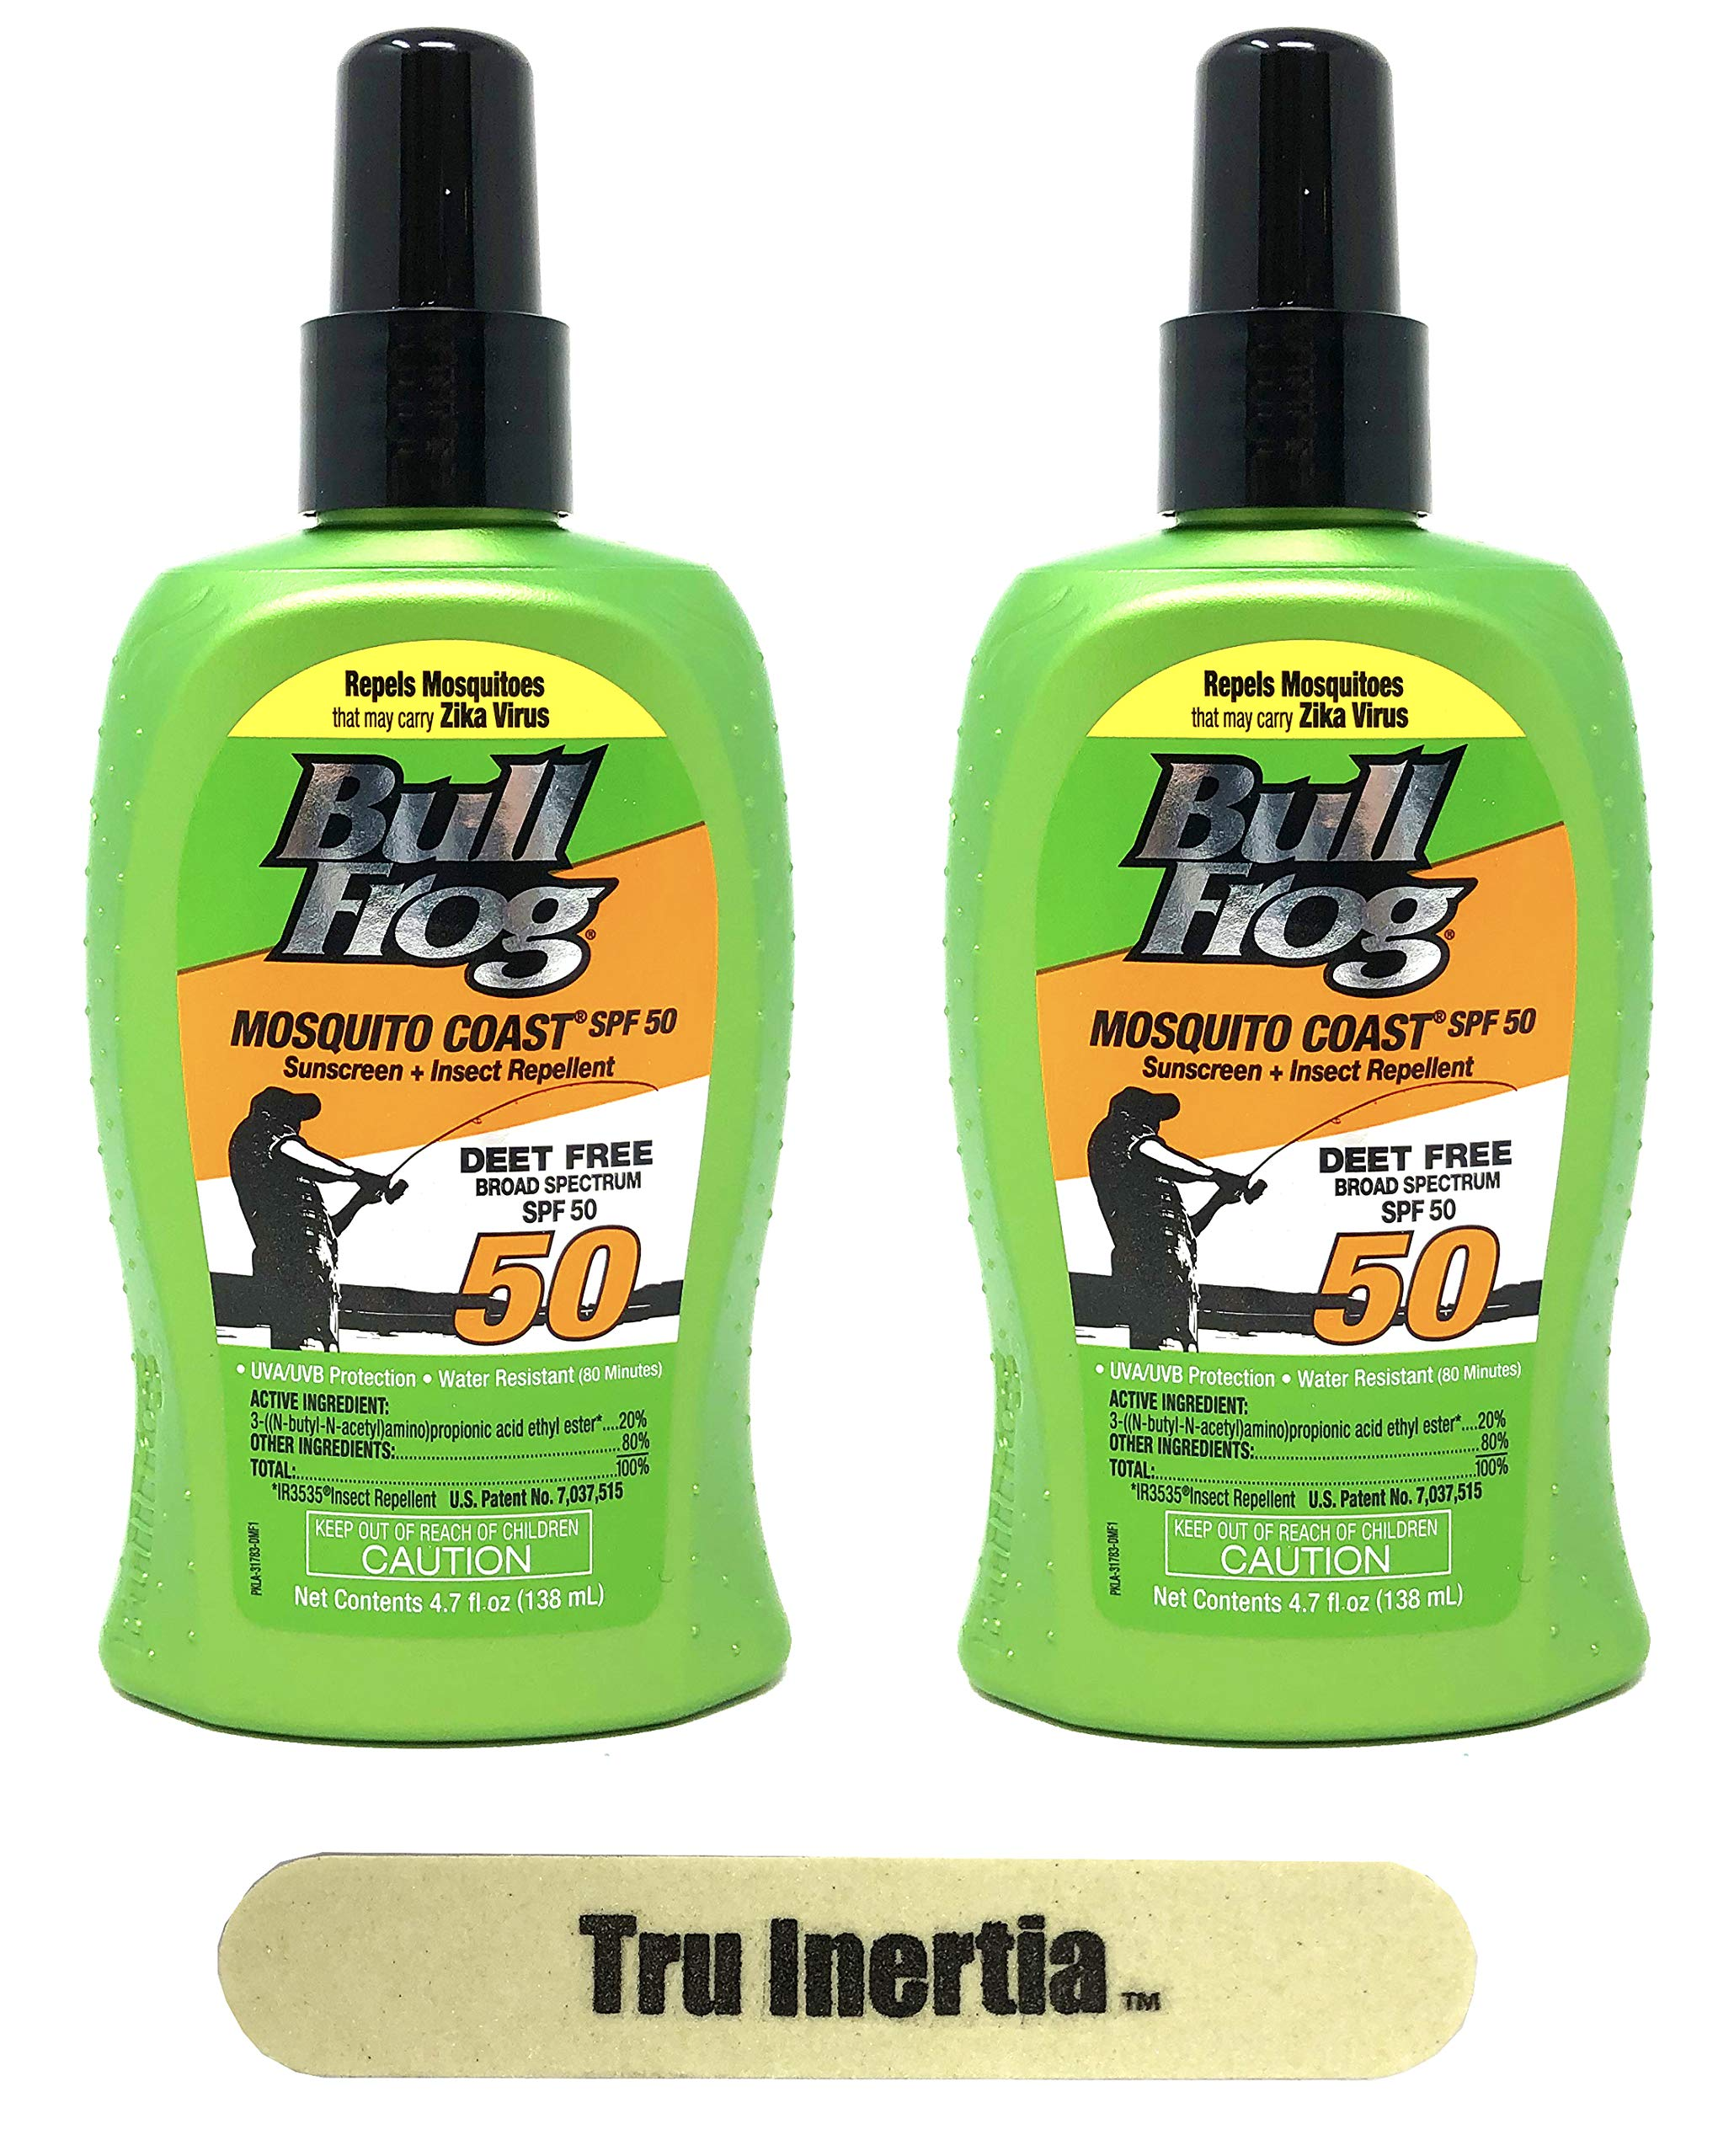 Bullfrog Mosquito Coast Broad Spectrum SPF 50 - Insect Repellent and Sunscreen Pack of 2 (4.7 oz Per Bottle) - Deet Free, Water Resistant, UVA/UVB Protection with Tru Inertia Nail File